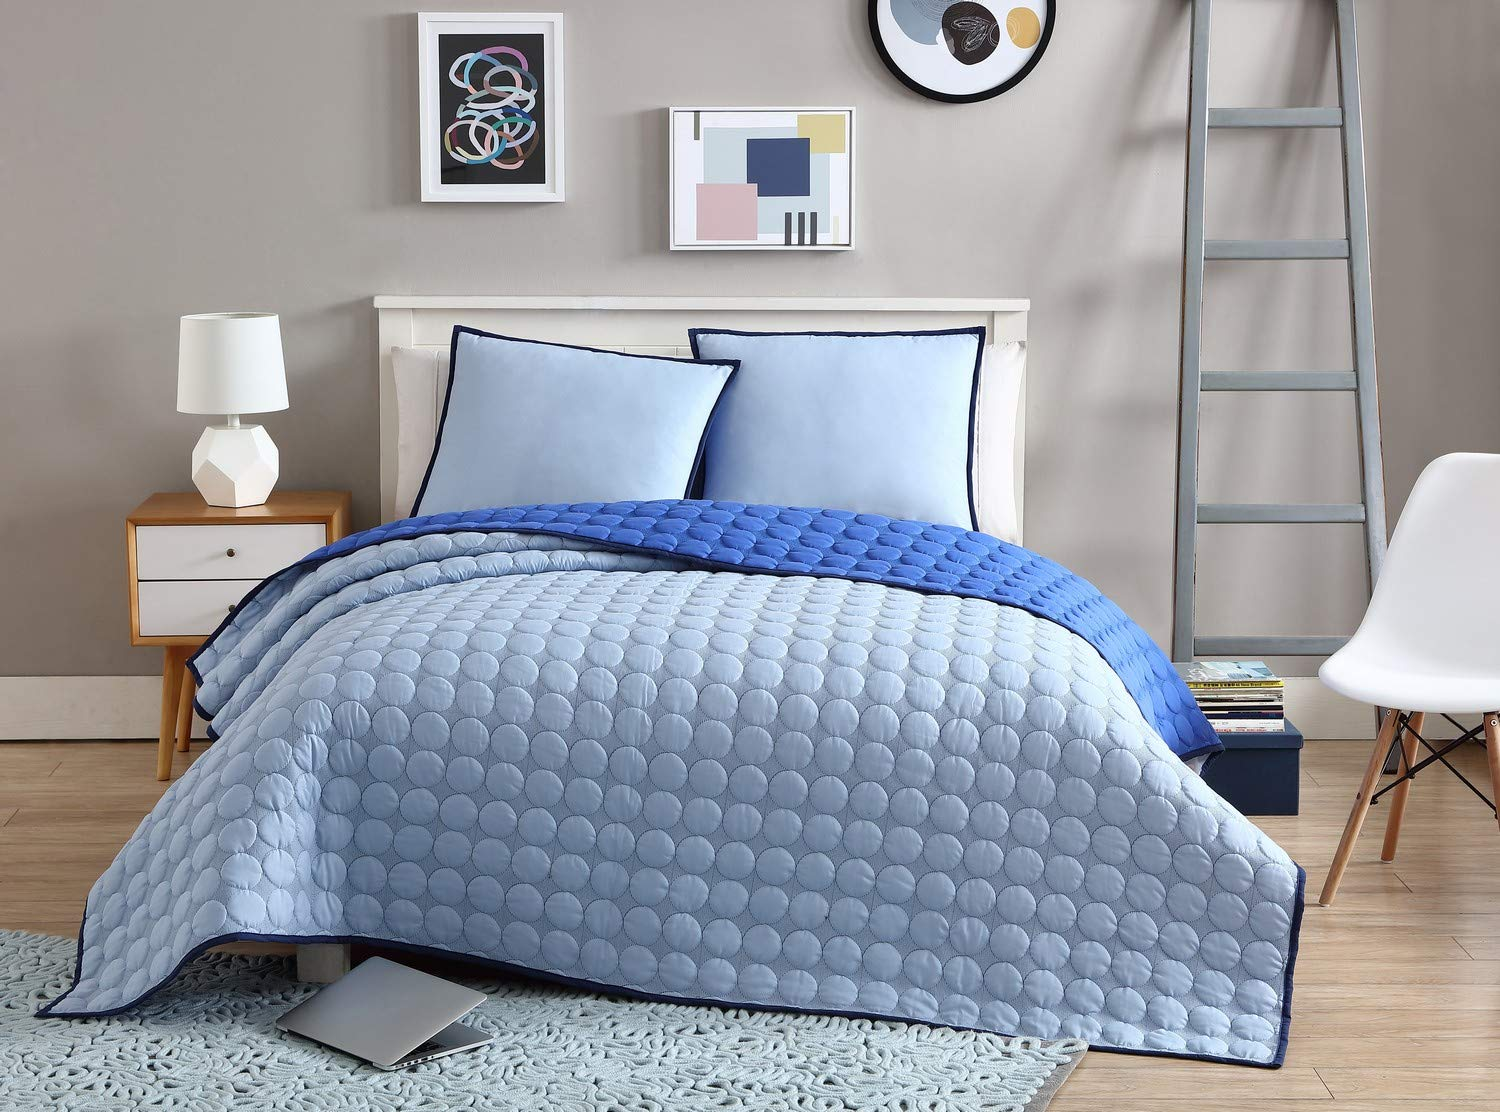 VCNY Home Checker Board 2 Piece Circle Embossed Reversible Coverlet Set Twin XL Blue